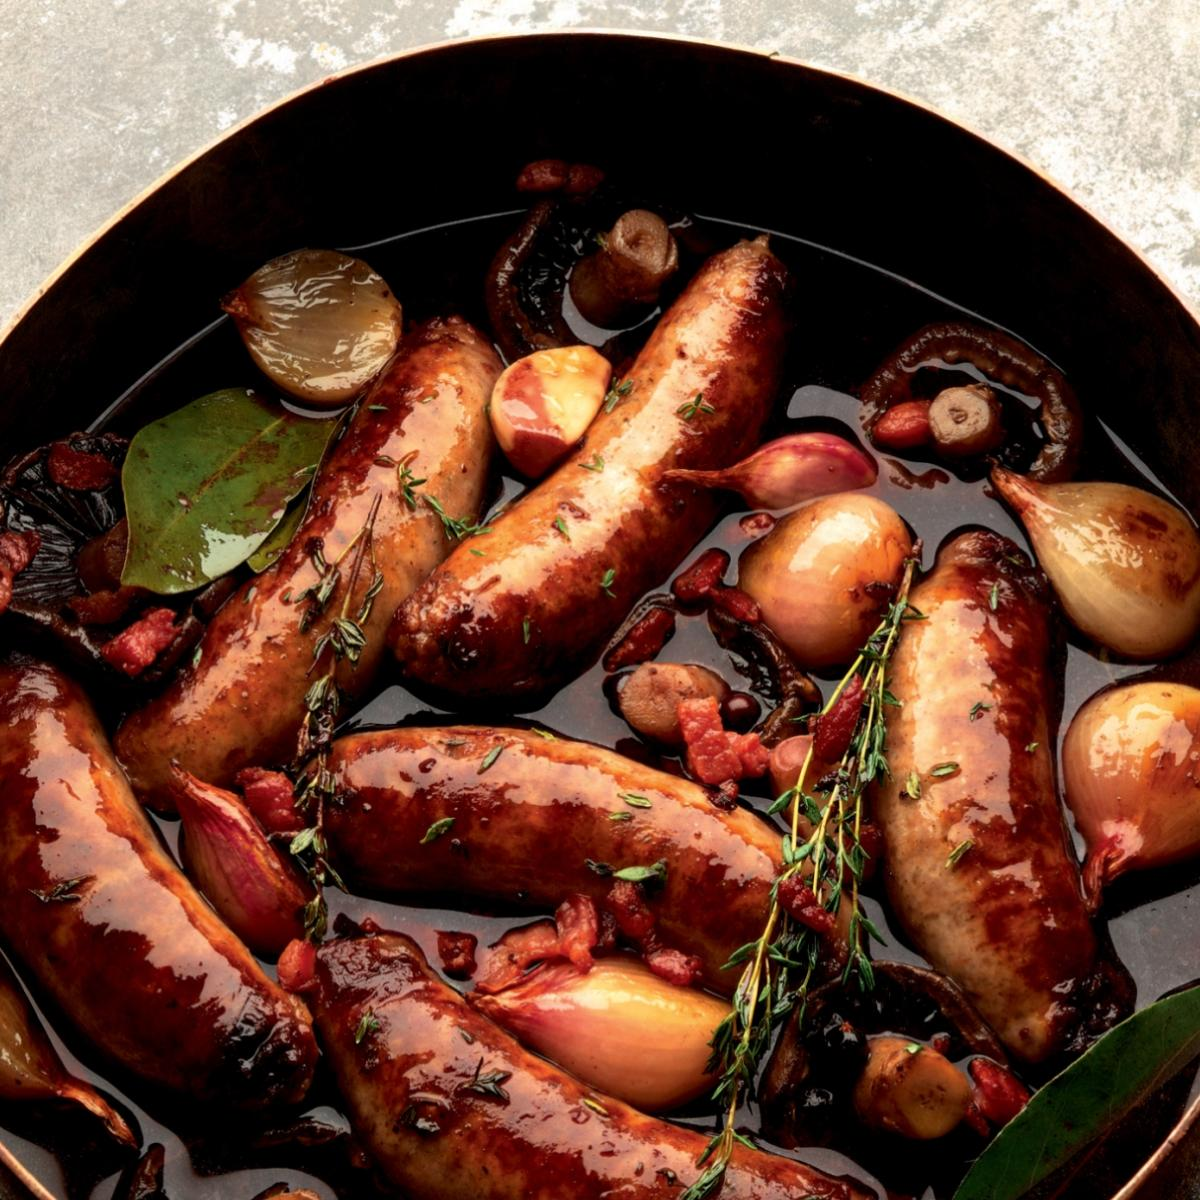 Winter venison sausages braised in red wine